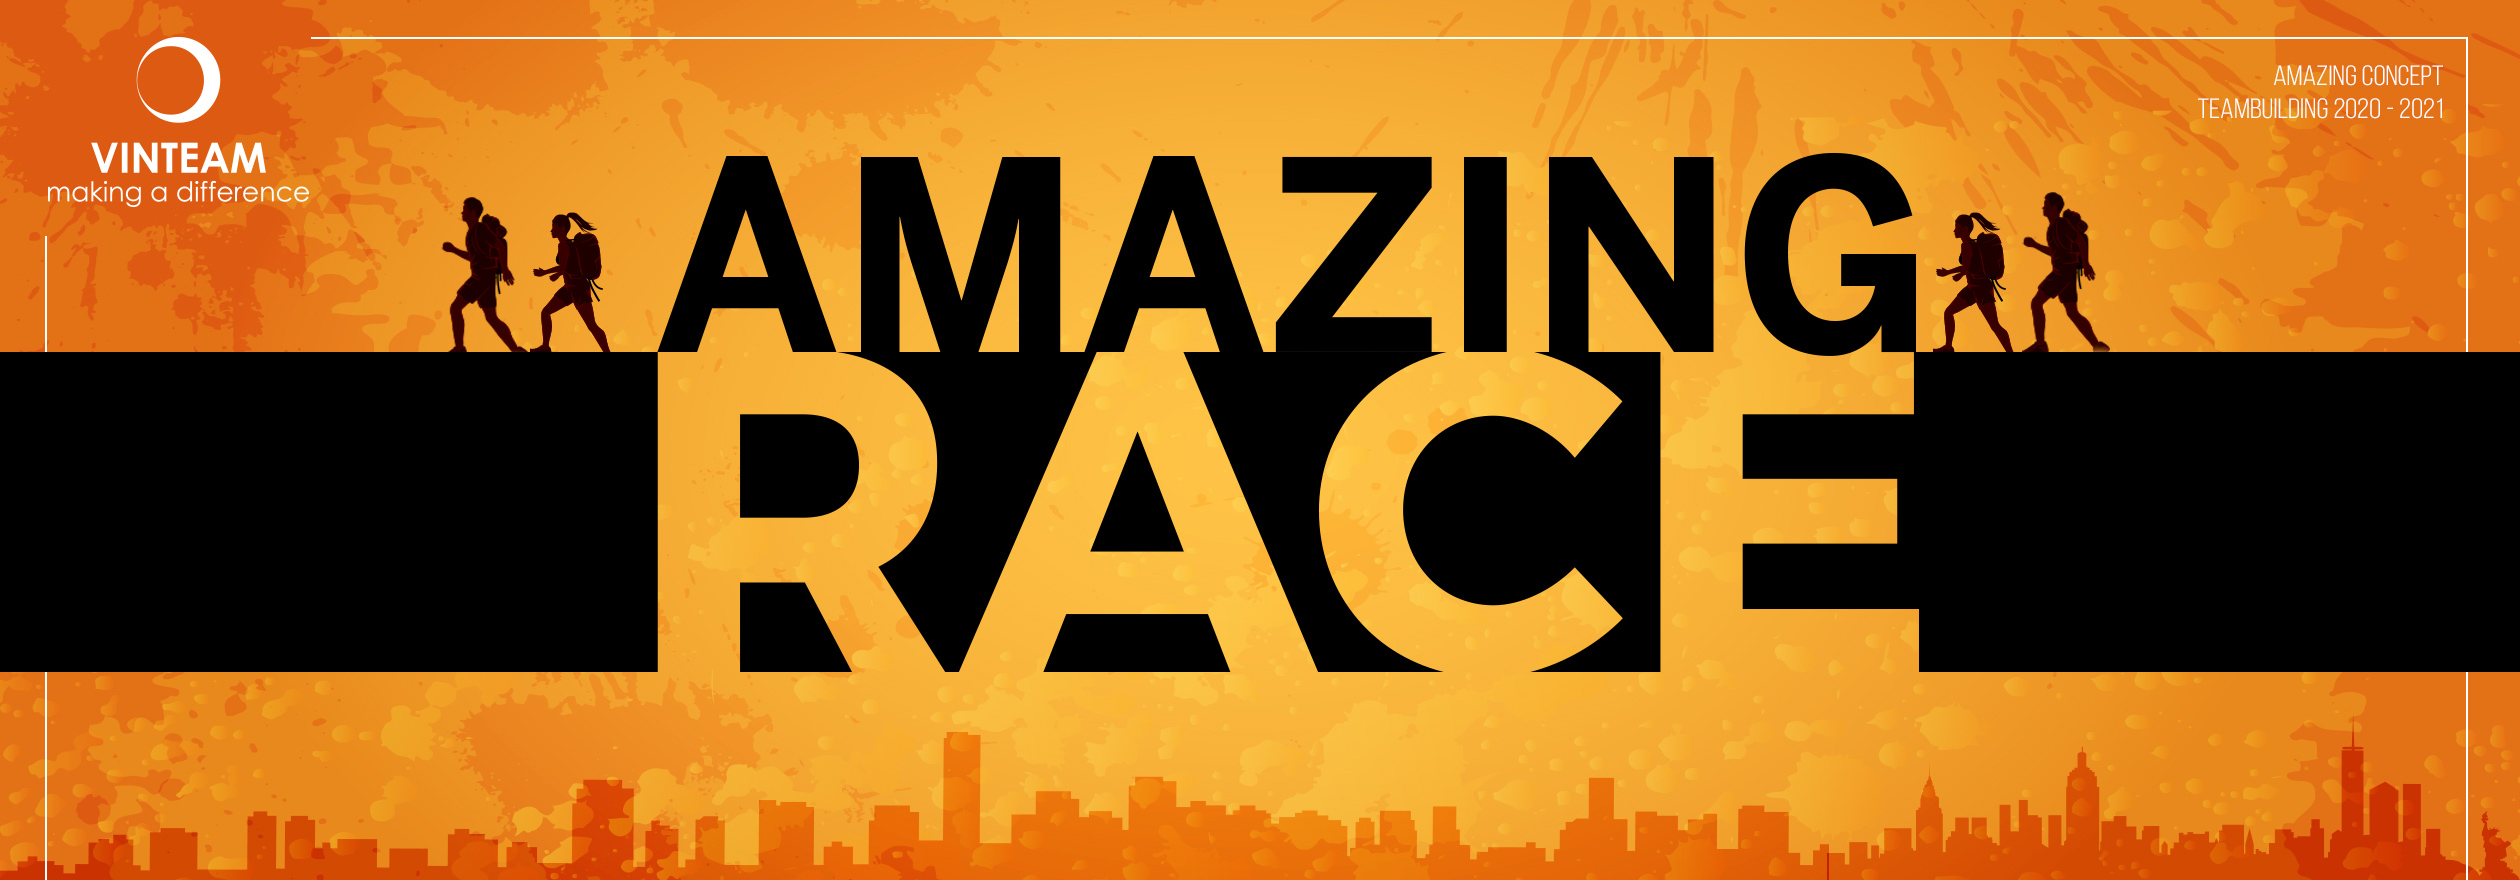 2-COVER-amazing-race